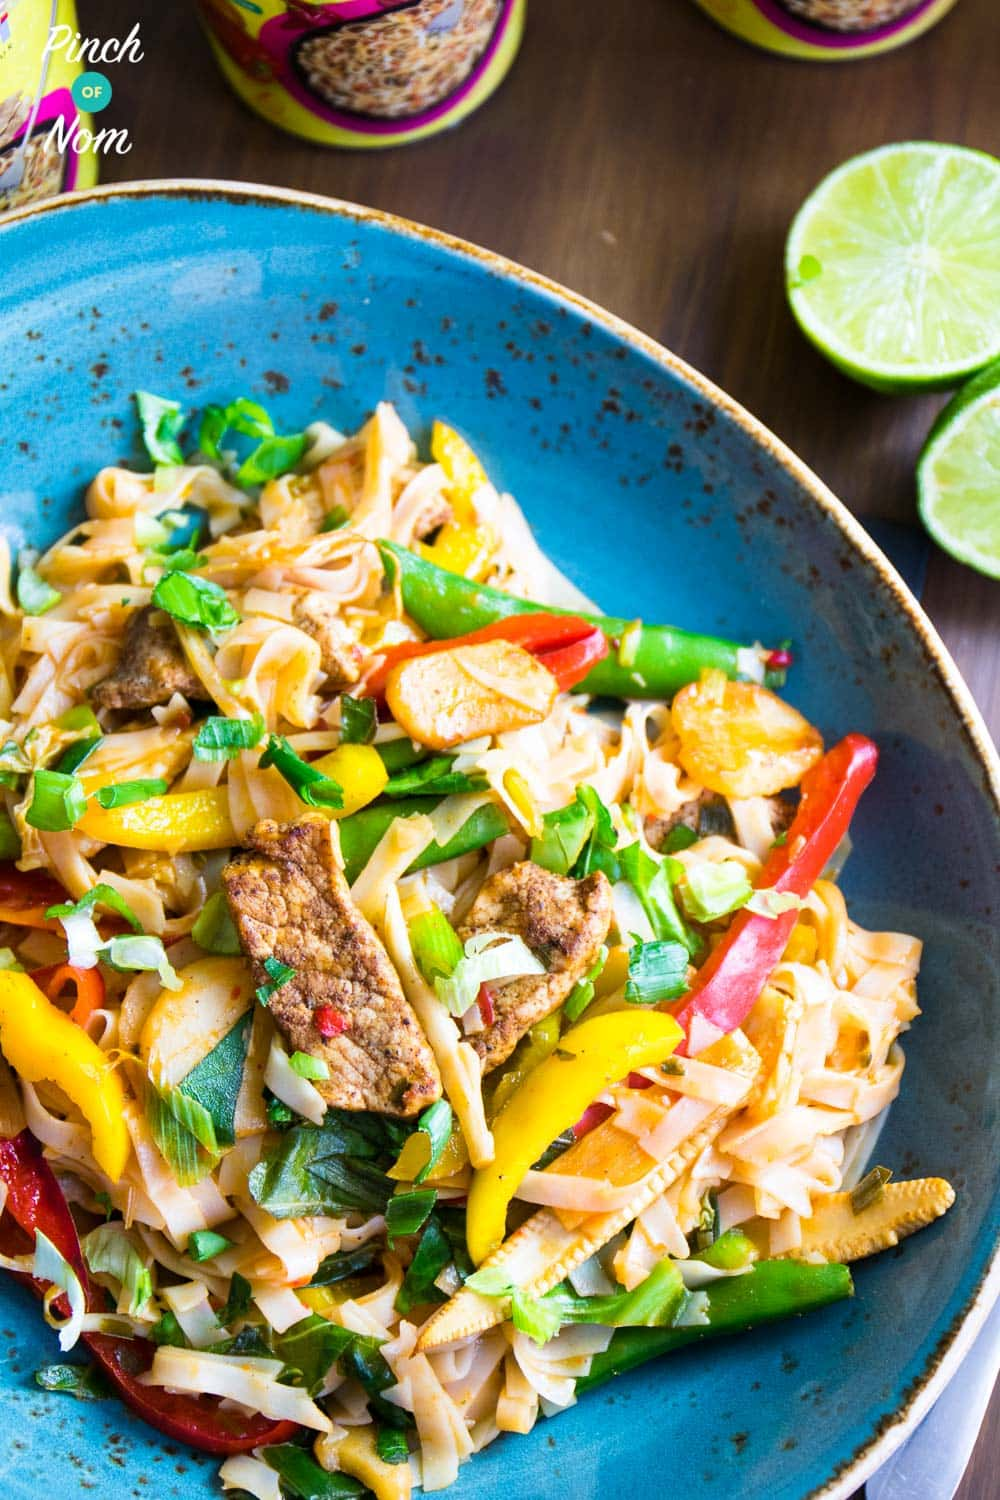 Low Syn Ilumi Sweet Chilli Stir-Fry | Slimming World-3